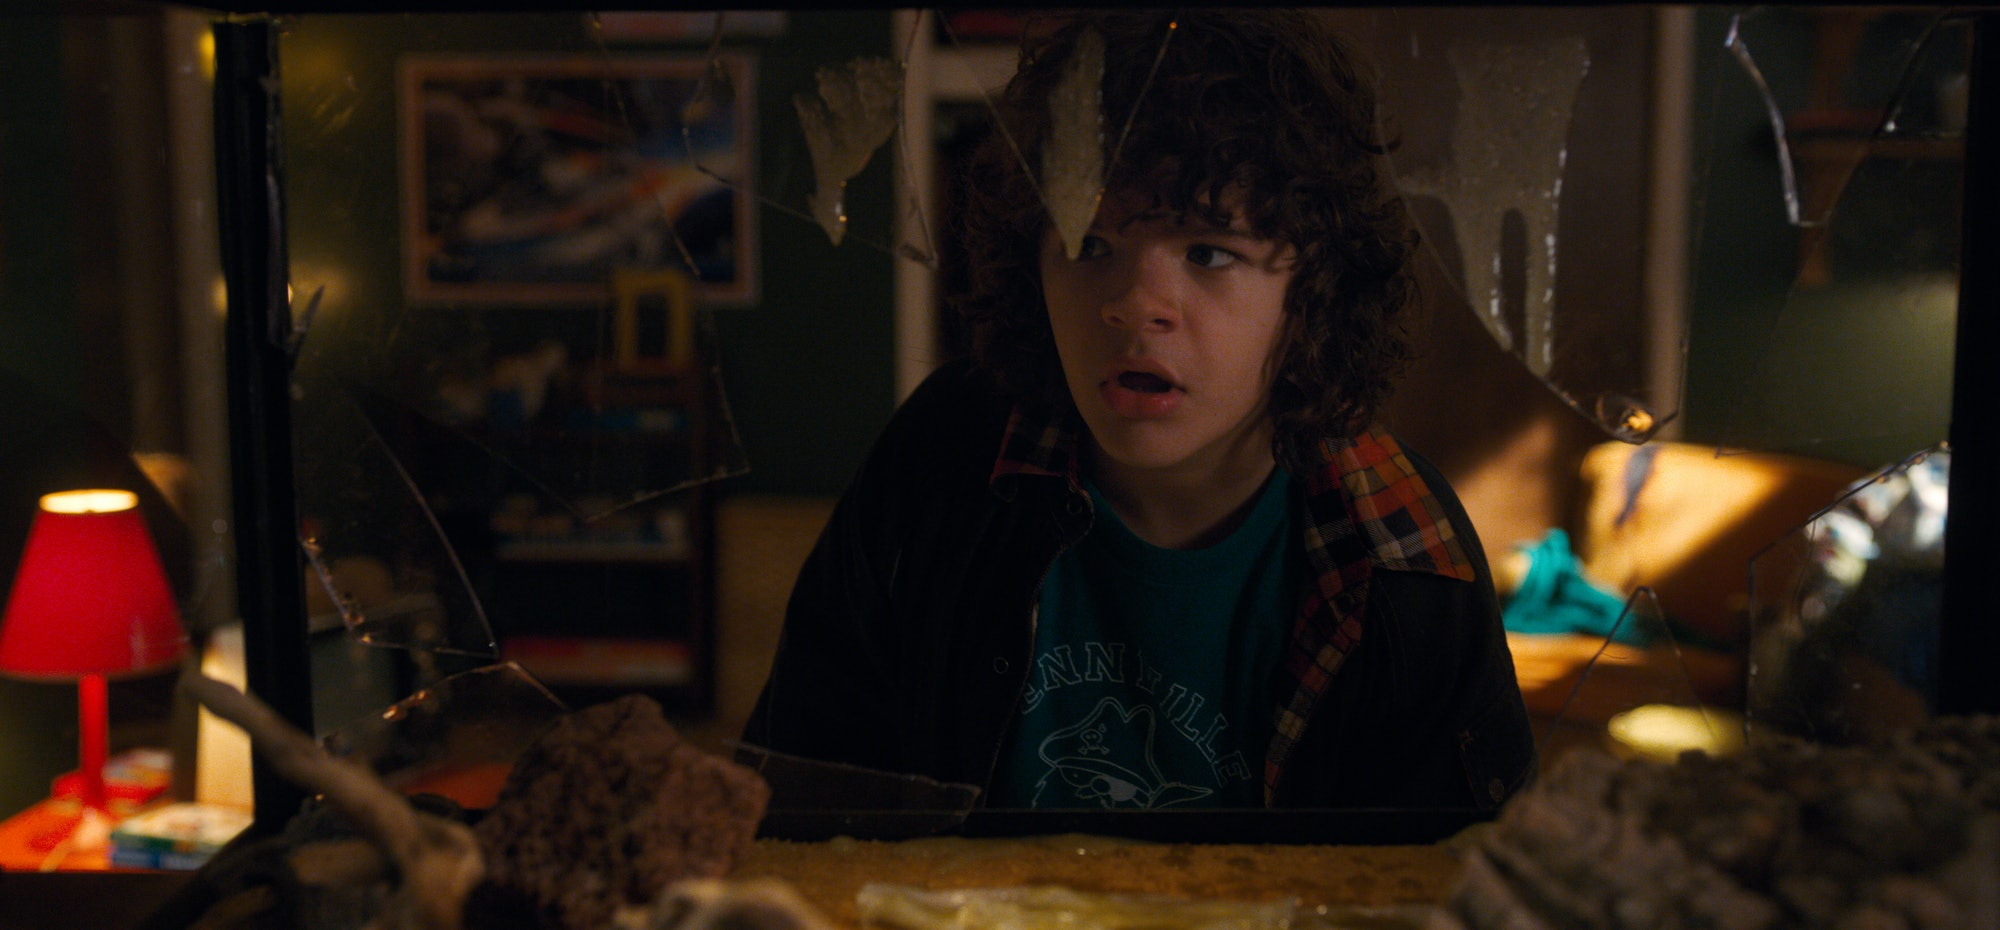 gaten matarazzo stranger things season 2